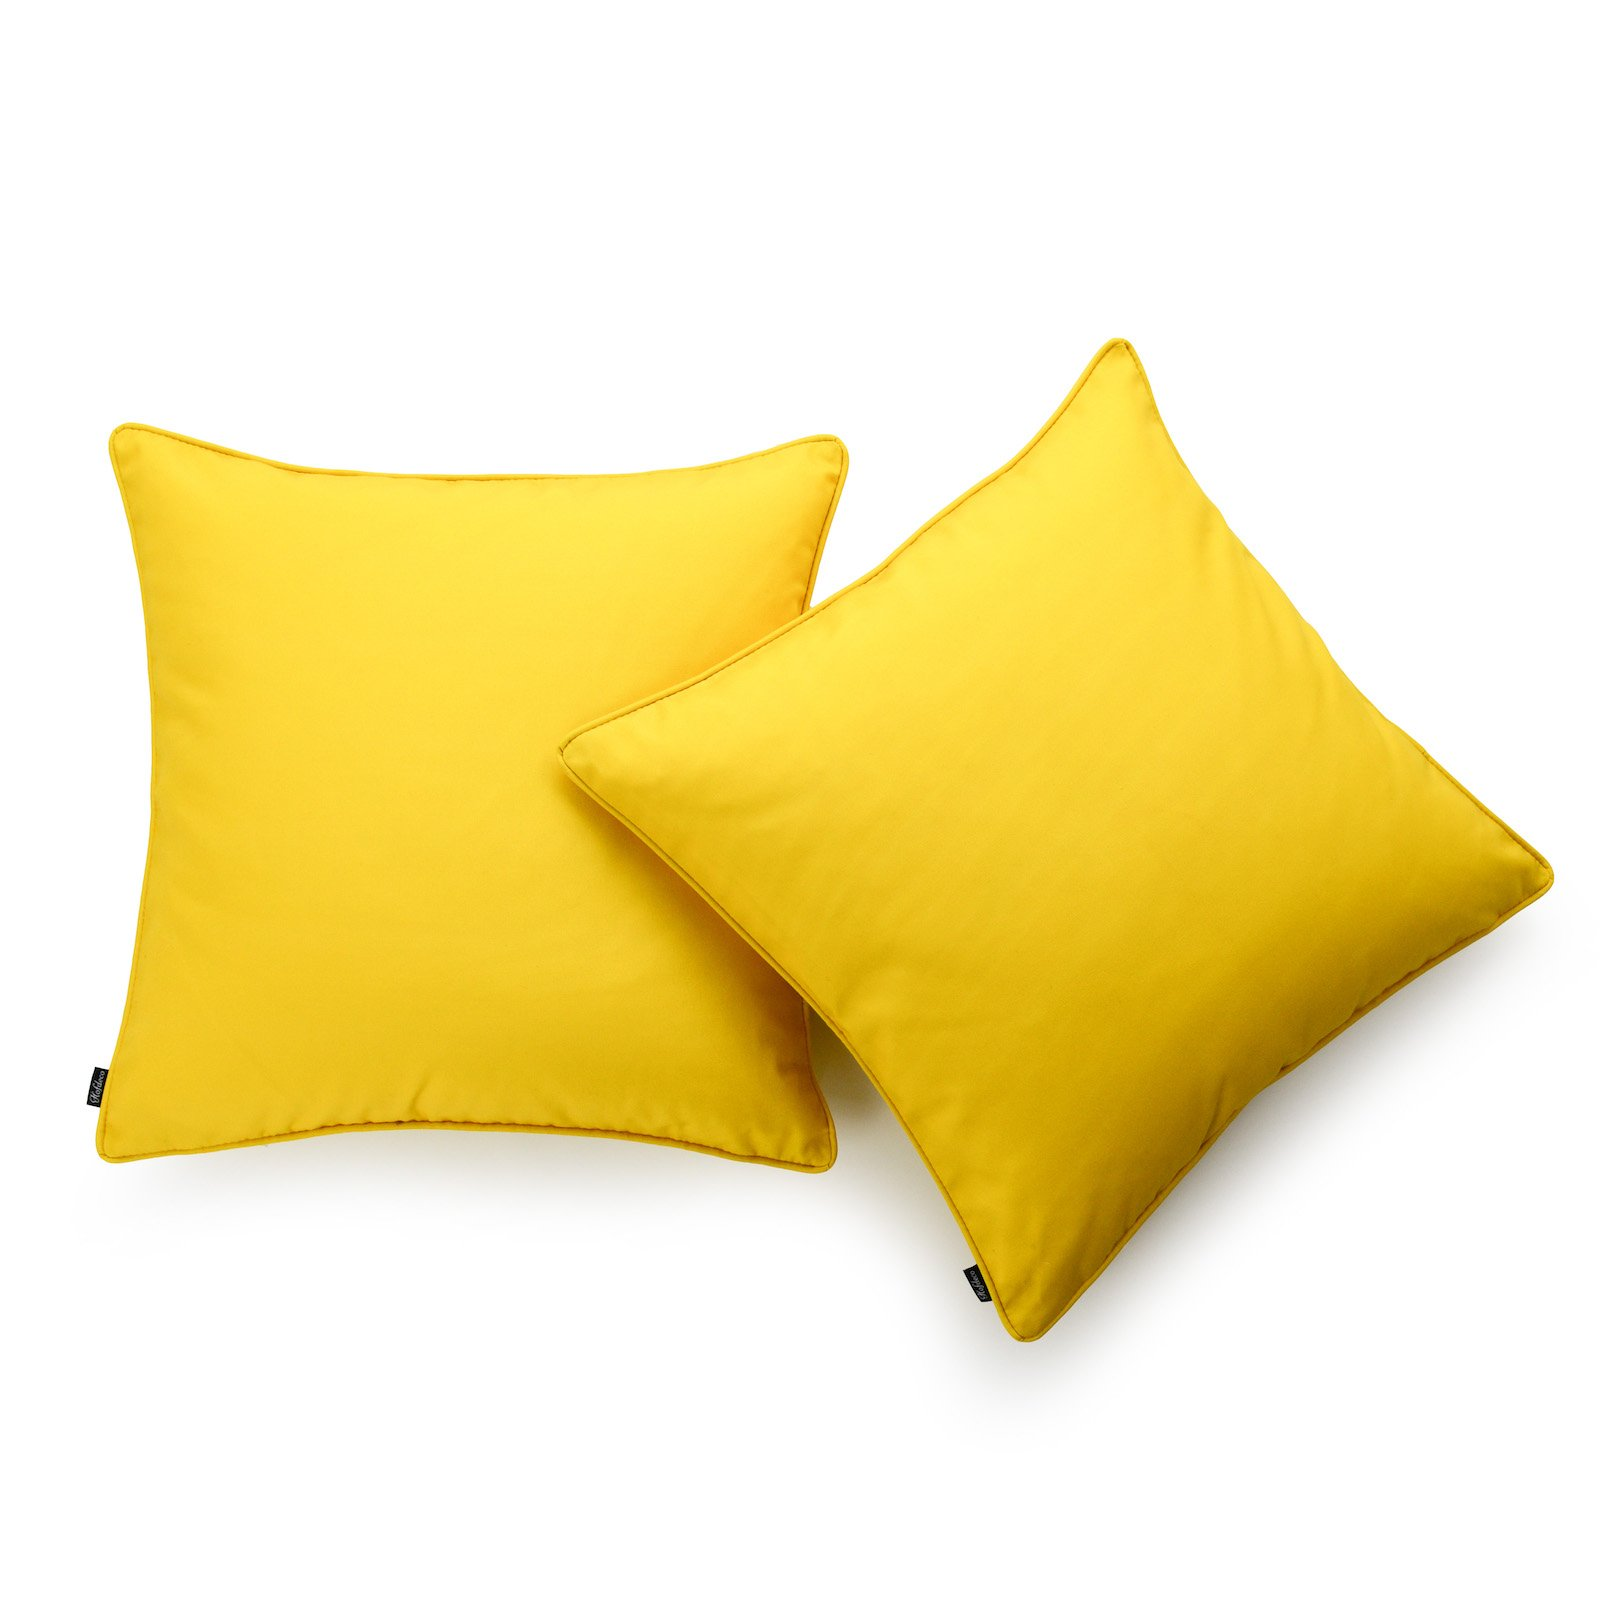 Hofdeco Decorative Throw Pillow Cover INDOOR OUTDOOR WATER RESISTANT Canvas Vibrant Yellow Solid 18''x18'' Set of 2